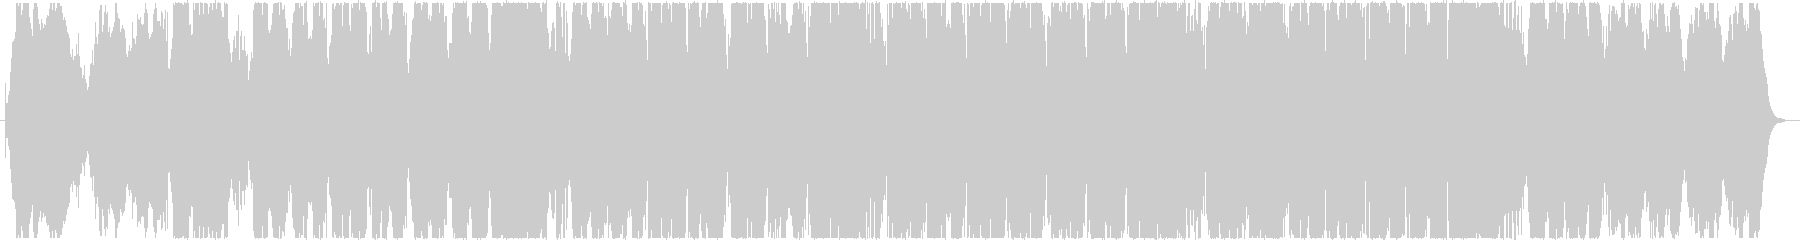 Naughty electro that makes use of narration's unreproduced waveform